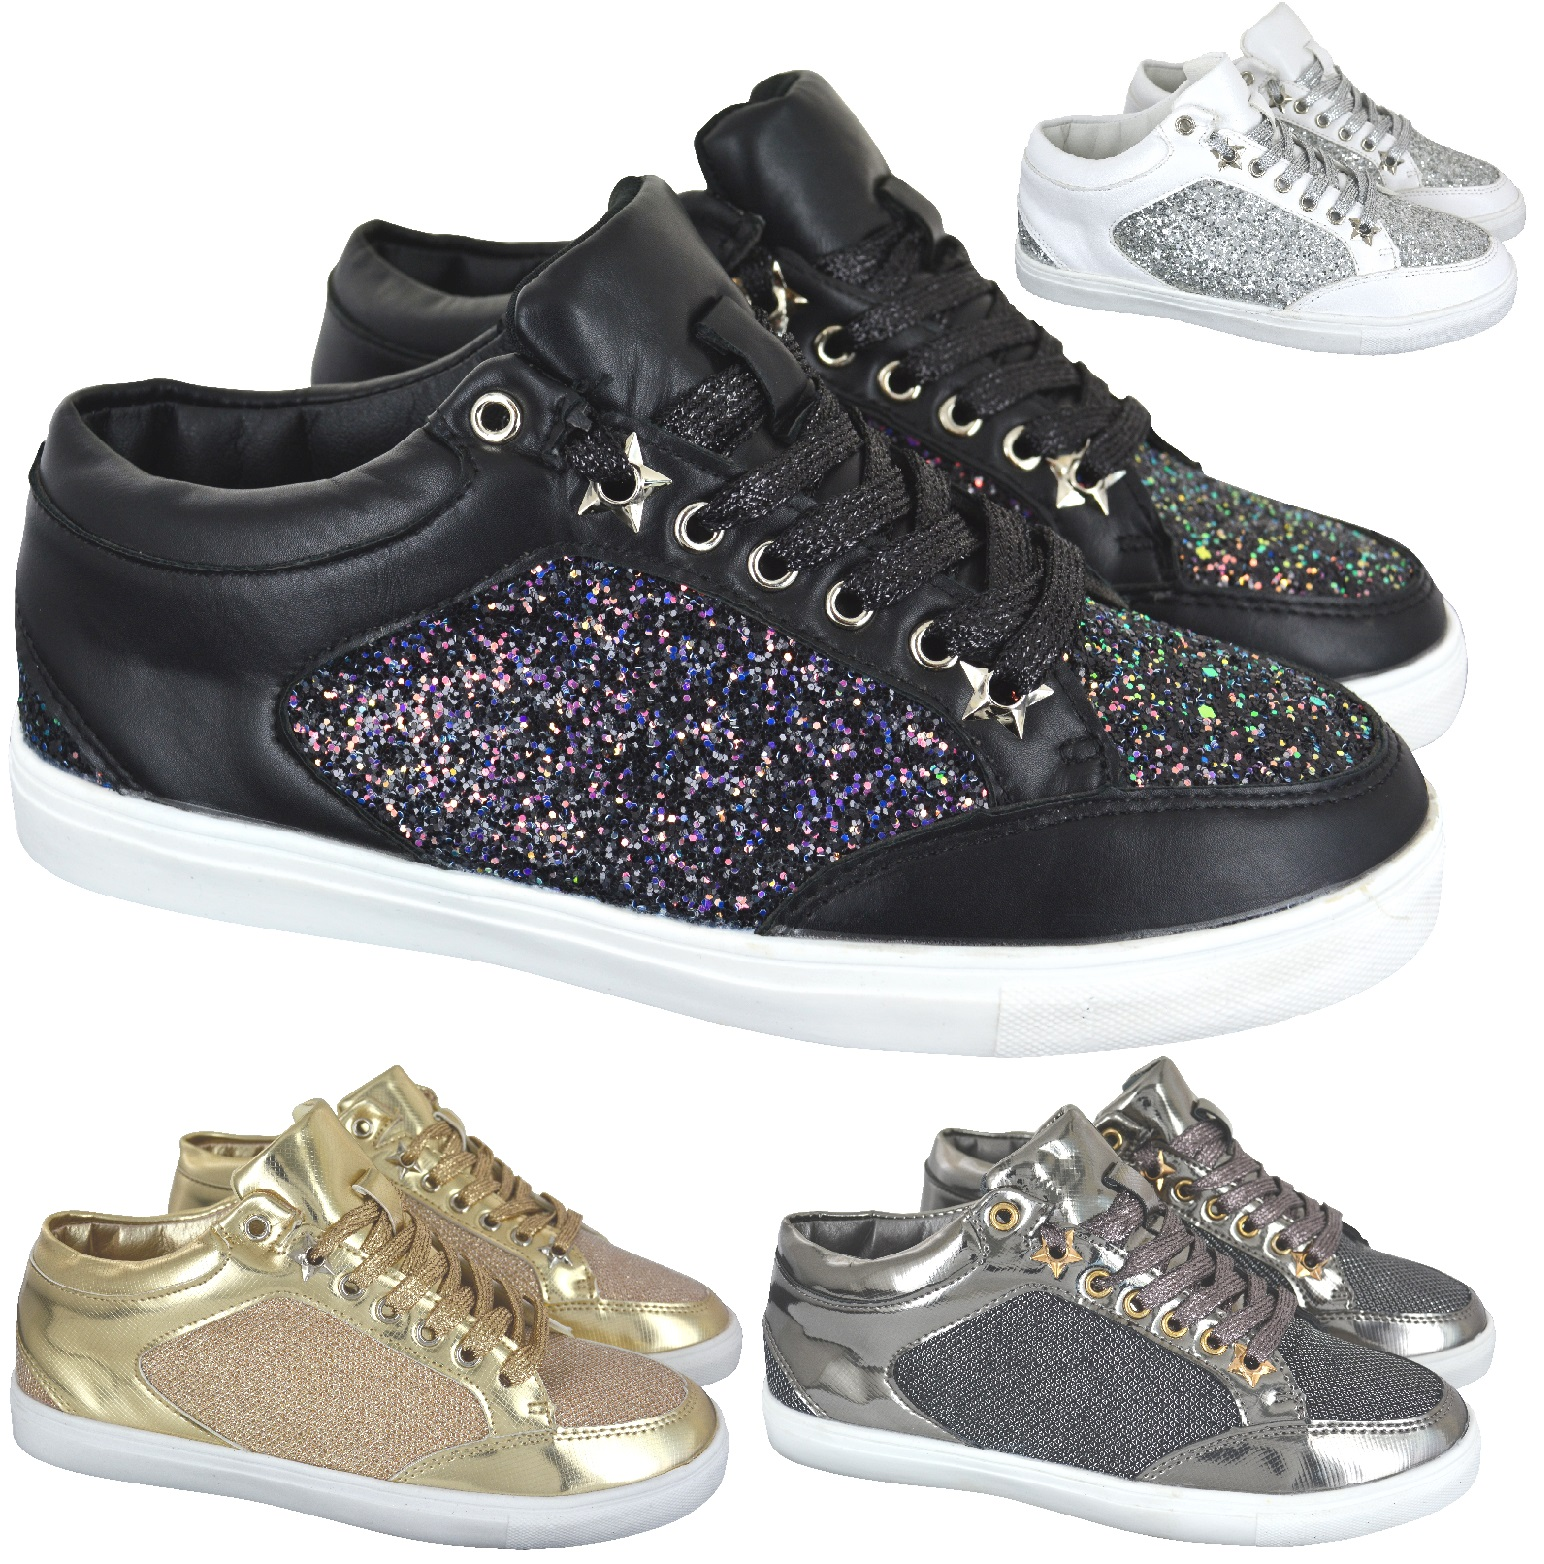 53962f7cdc61 Sentinel LADIES WOMENS SPARKLY GLITTER LACE UP GYM RUNNING SPORT TRAINERS  SHOES SIZE 3-8